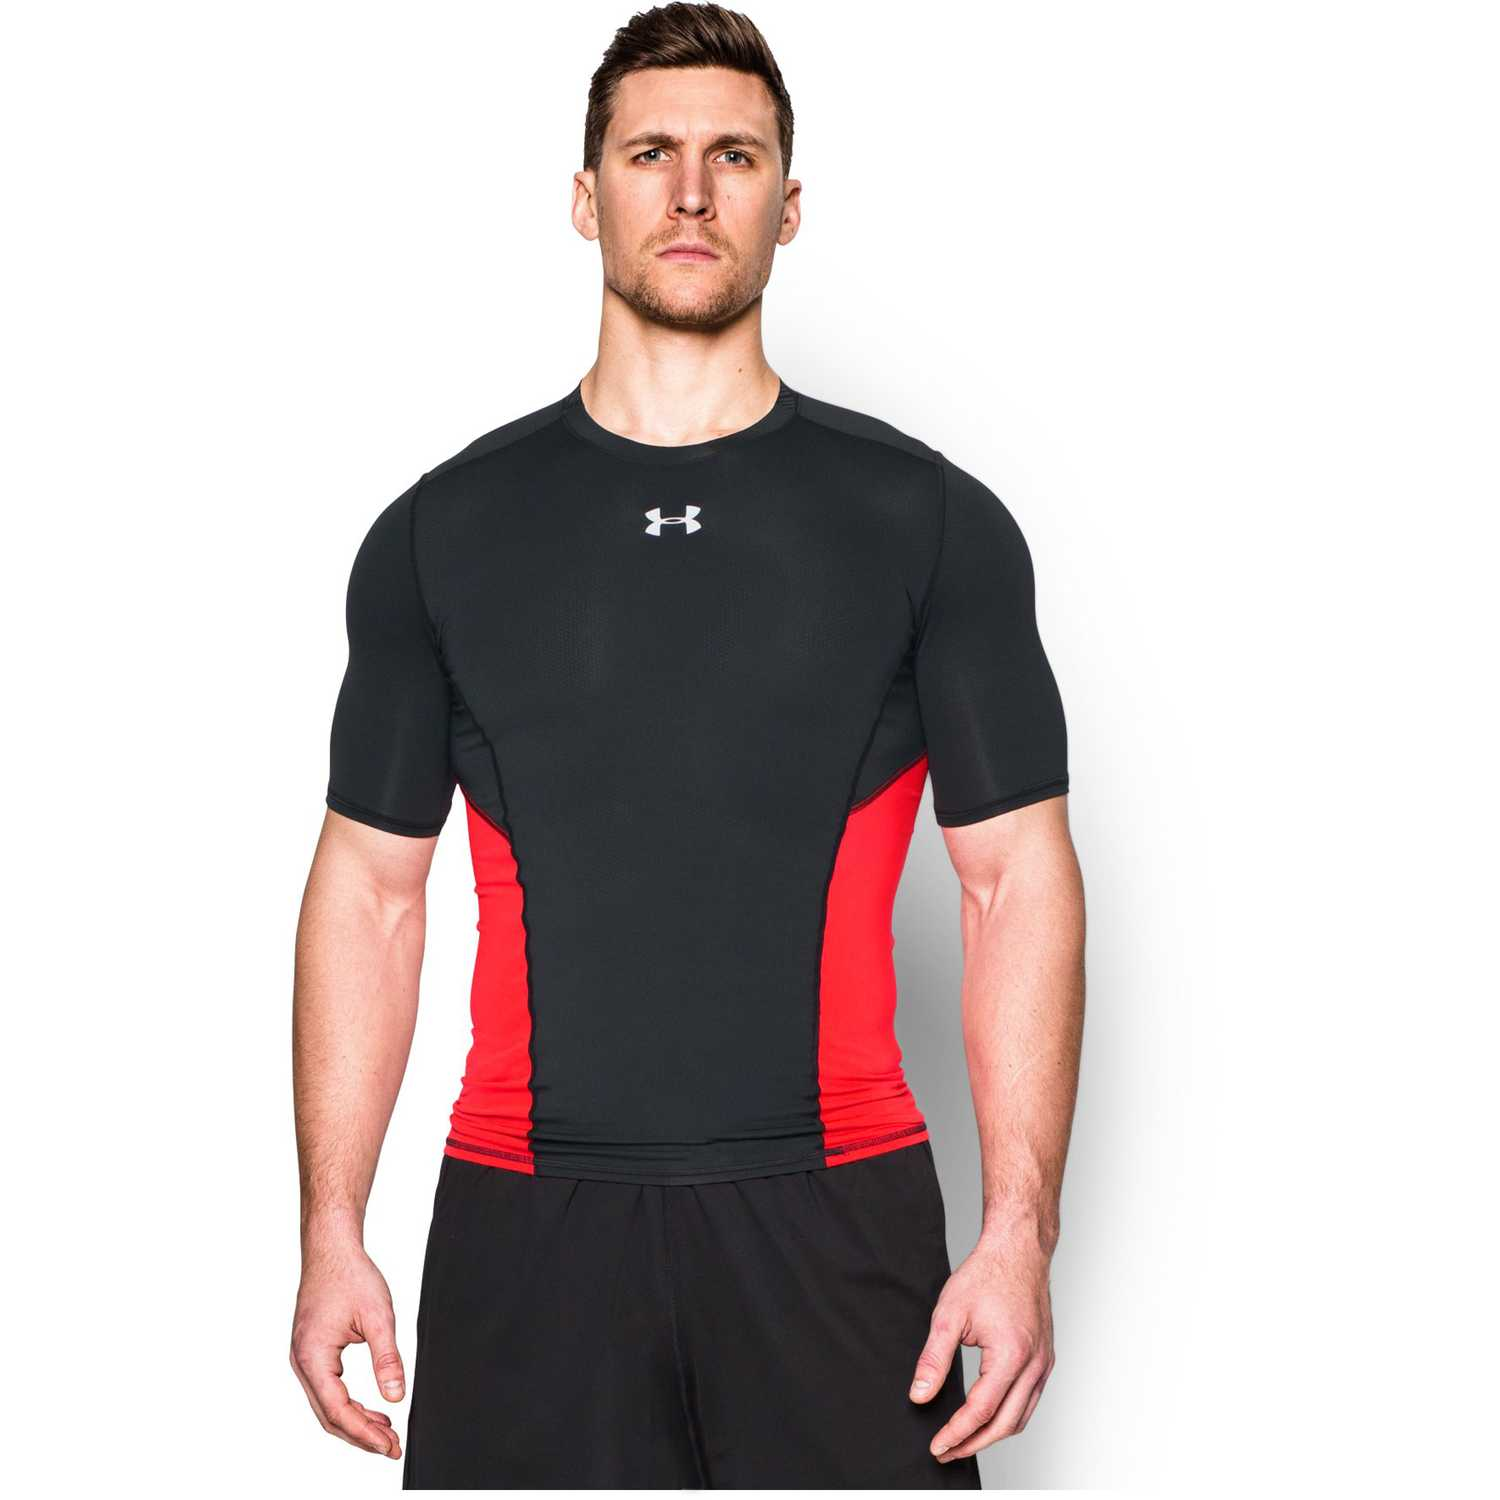 Polo de Hombre Under Armour Negro   Rojo ua hg coolswitch comp ss ... 02c55b6443